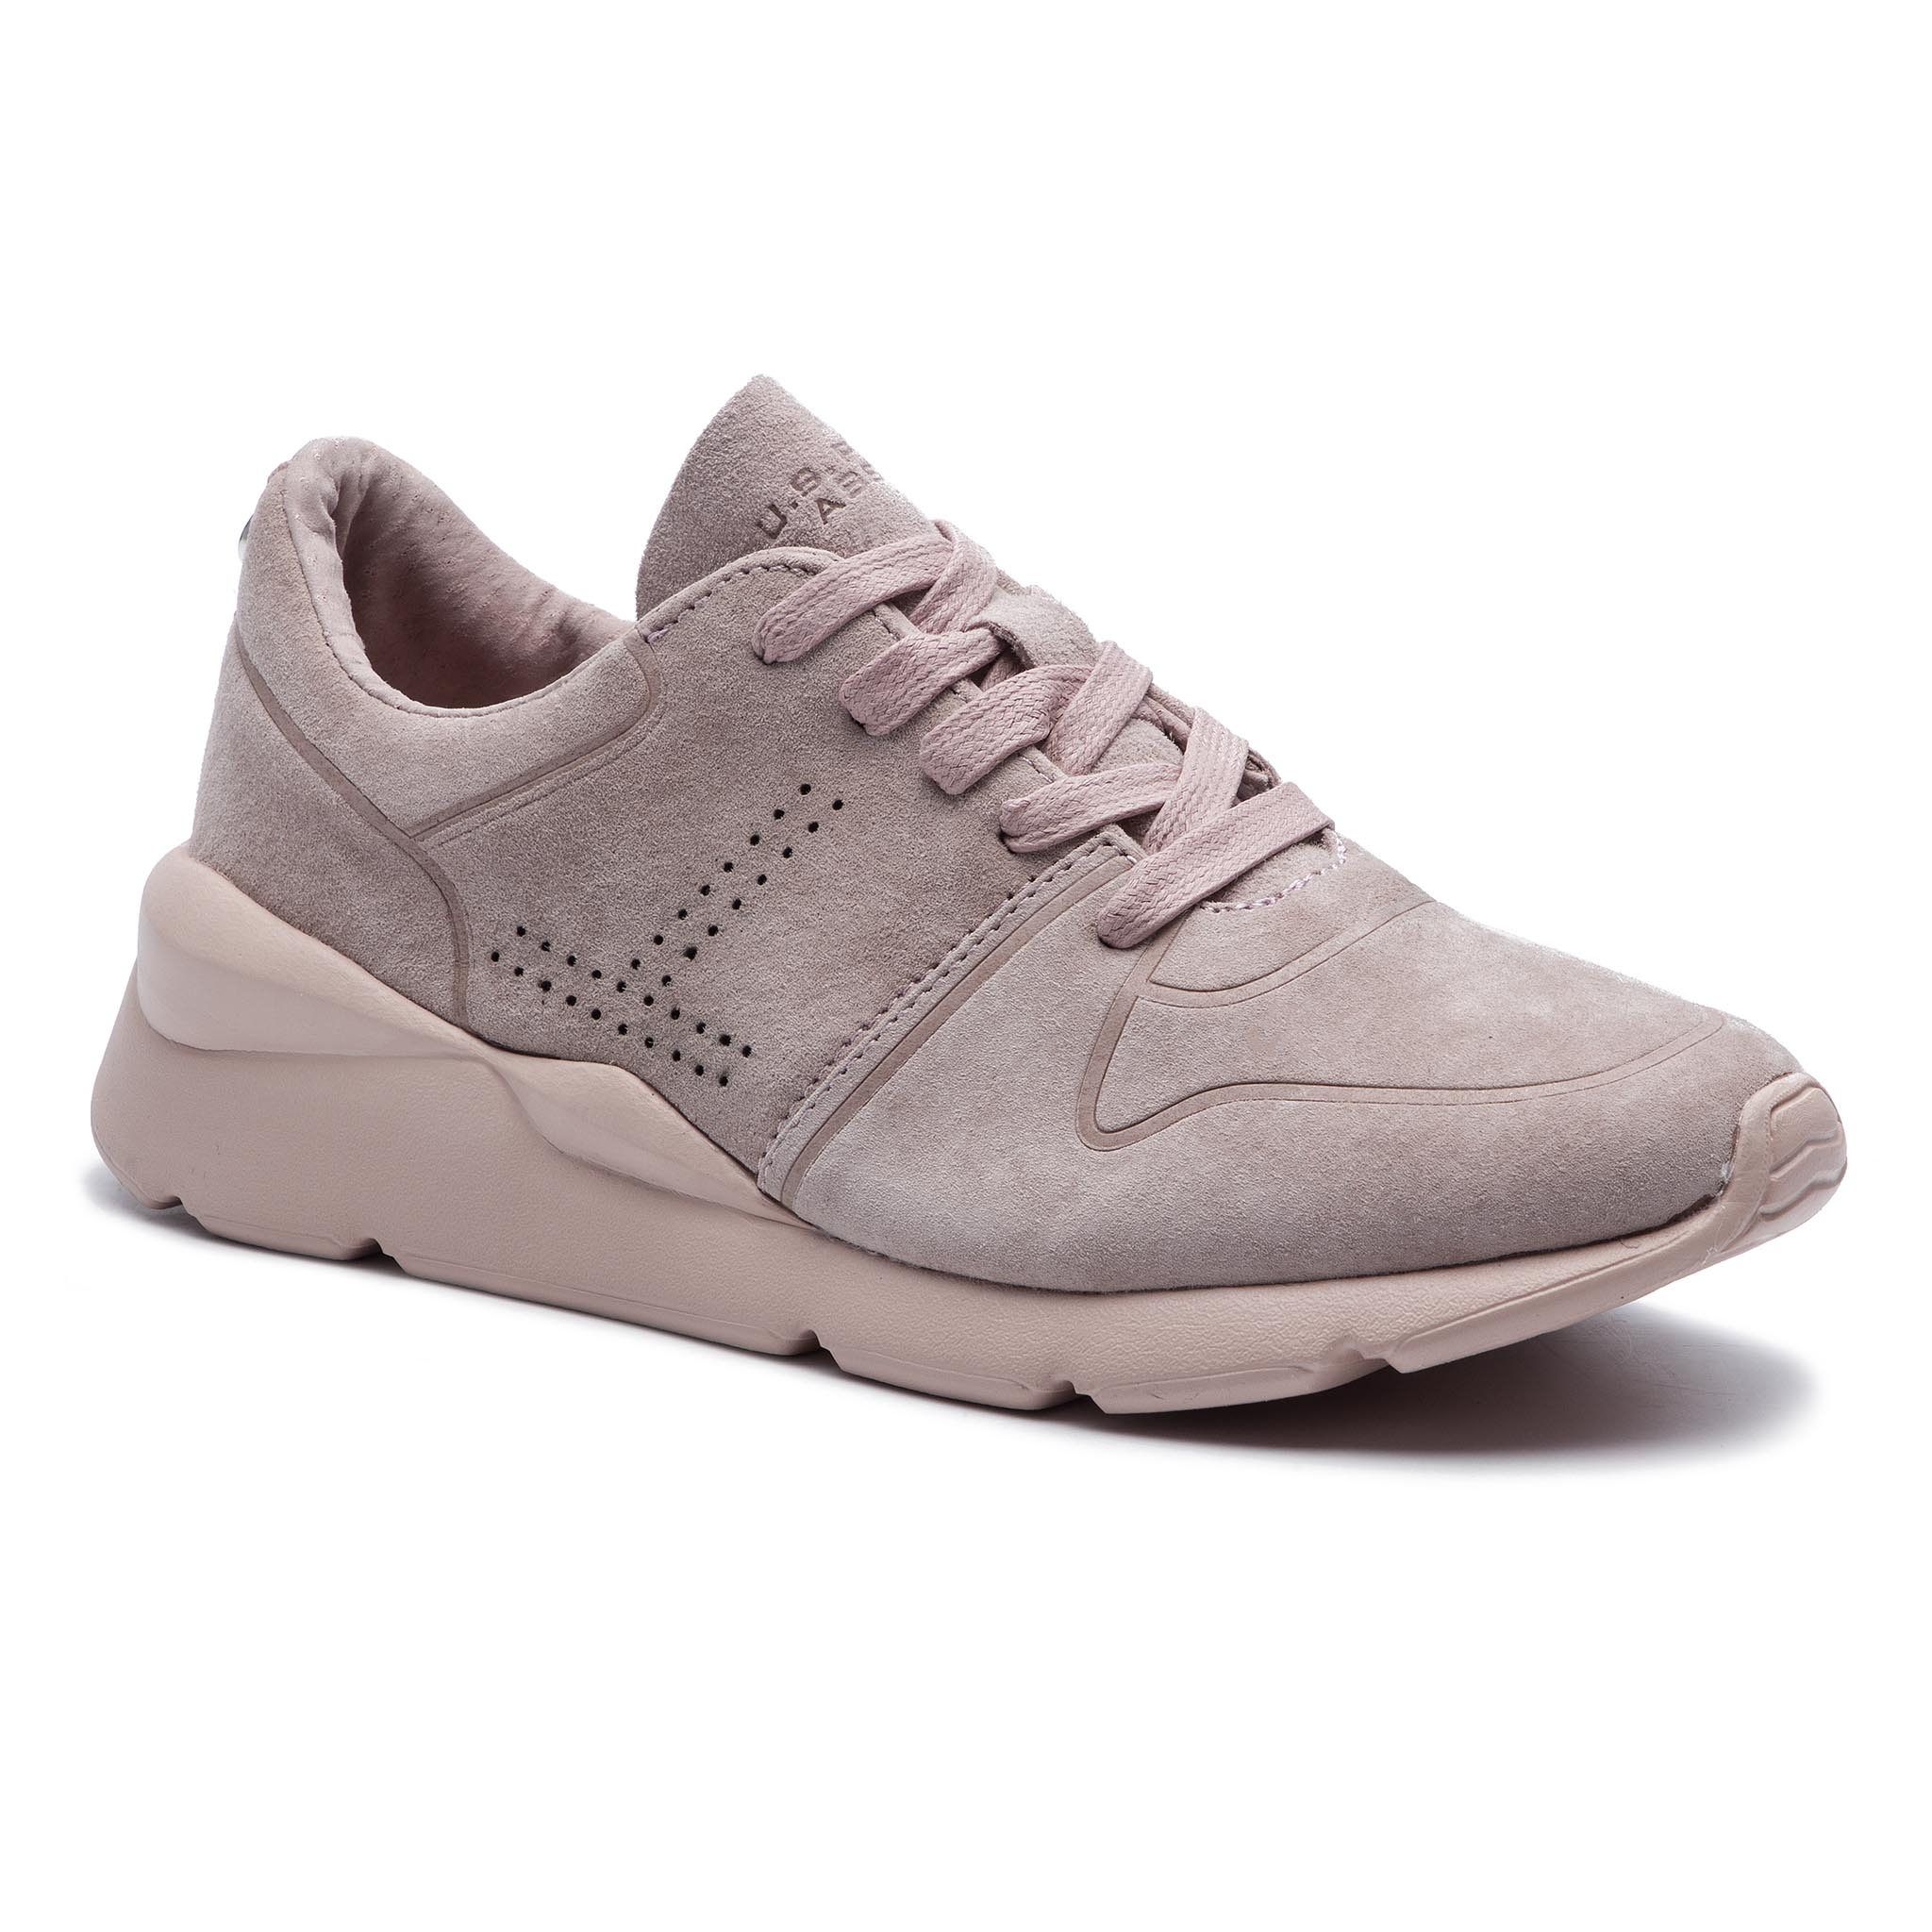 Sneakers U.S. POLO ASSN. - Honey 4122S9/S1 Wales Lpink